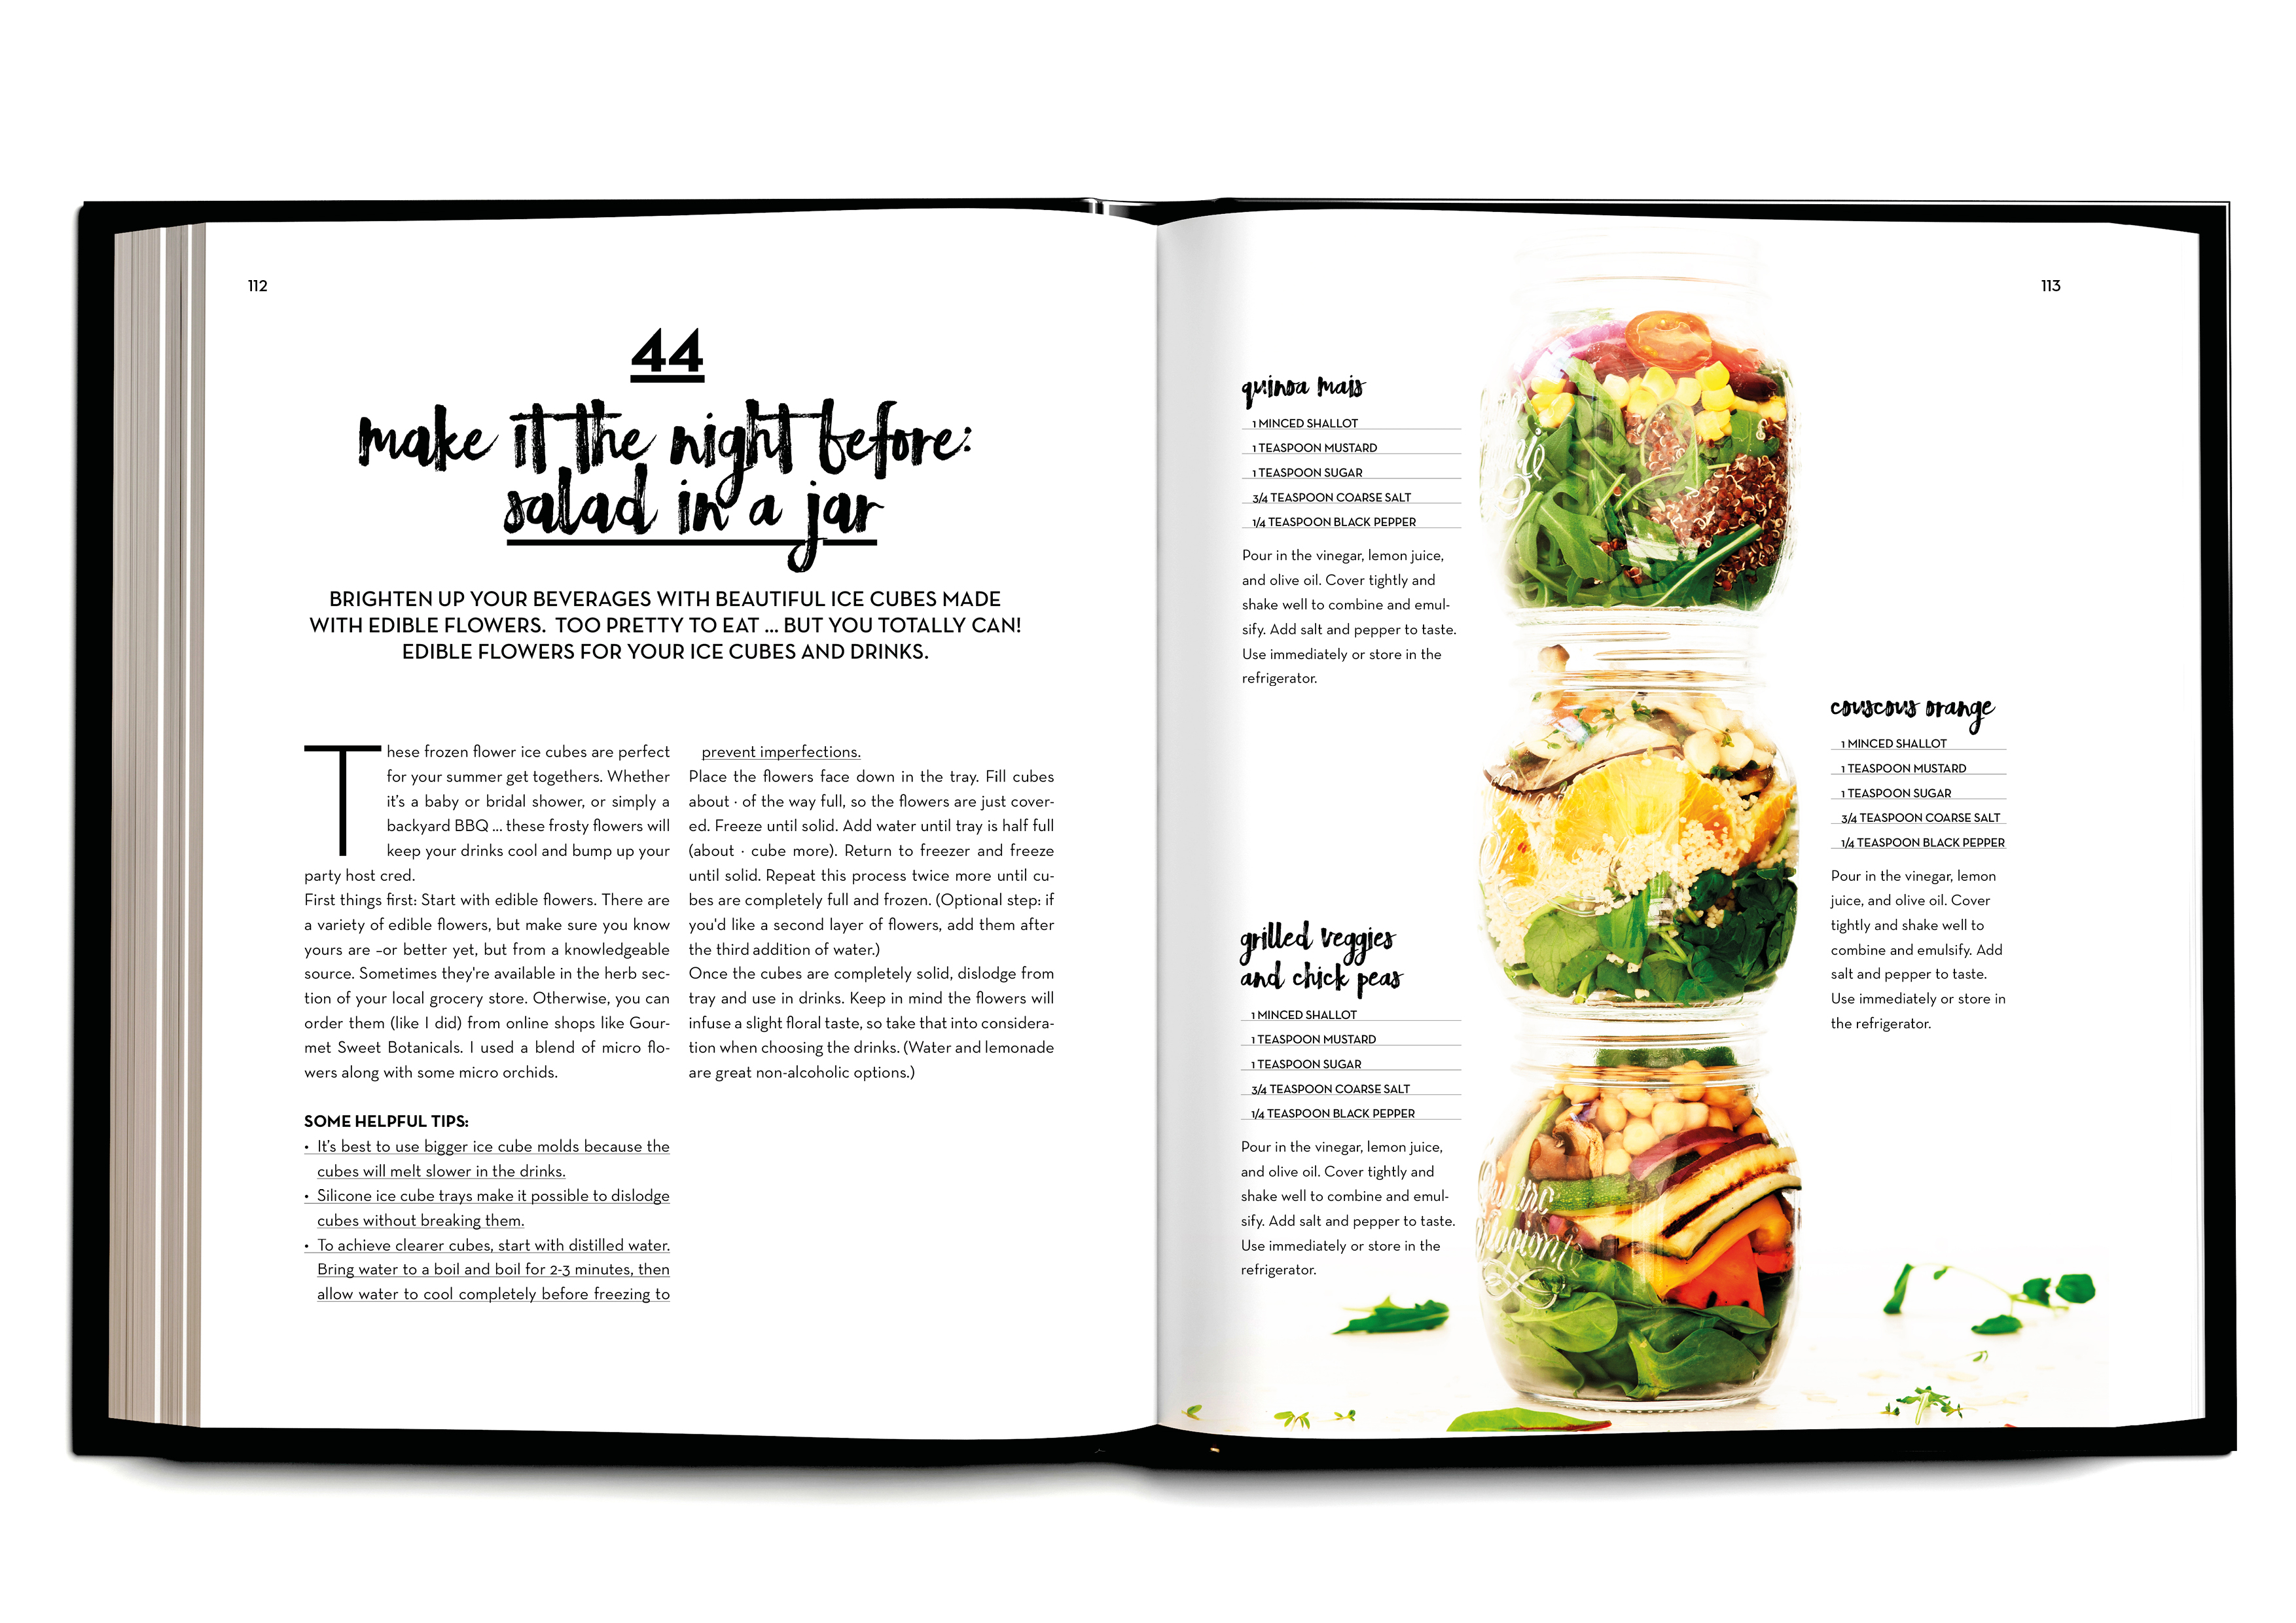 FOODWISE 6/22